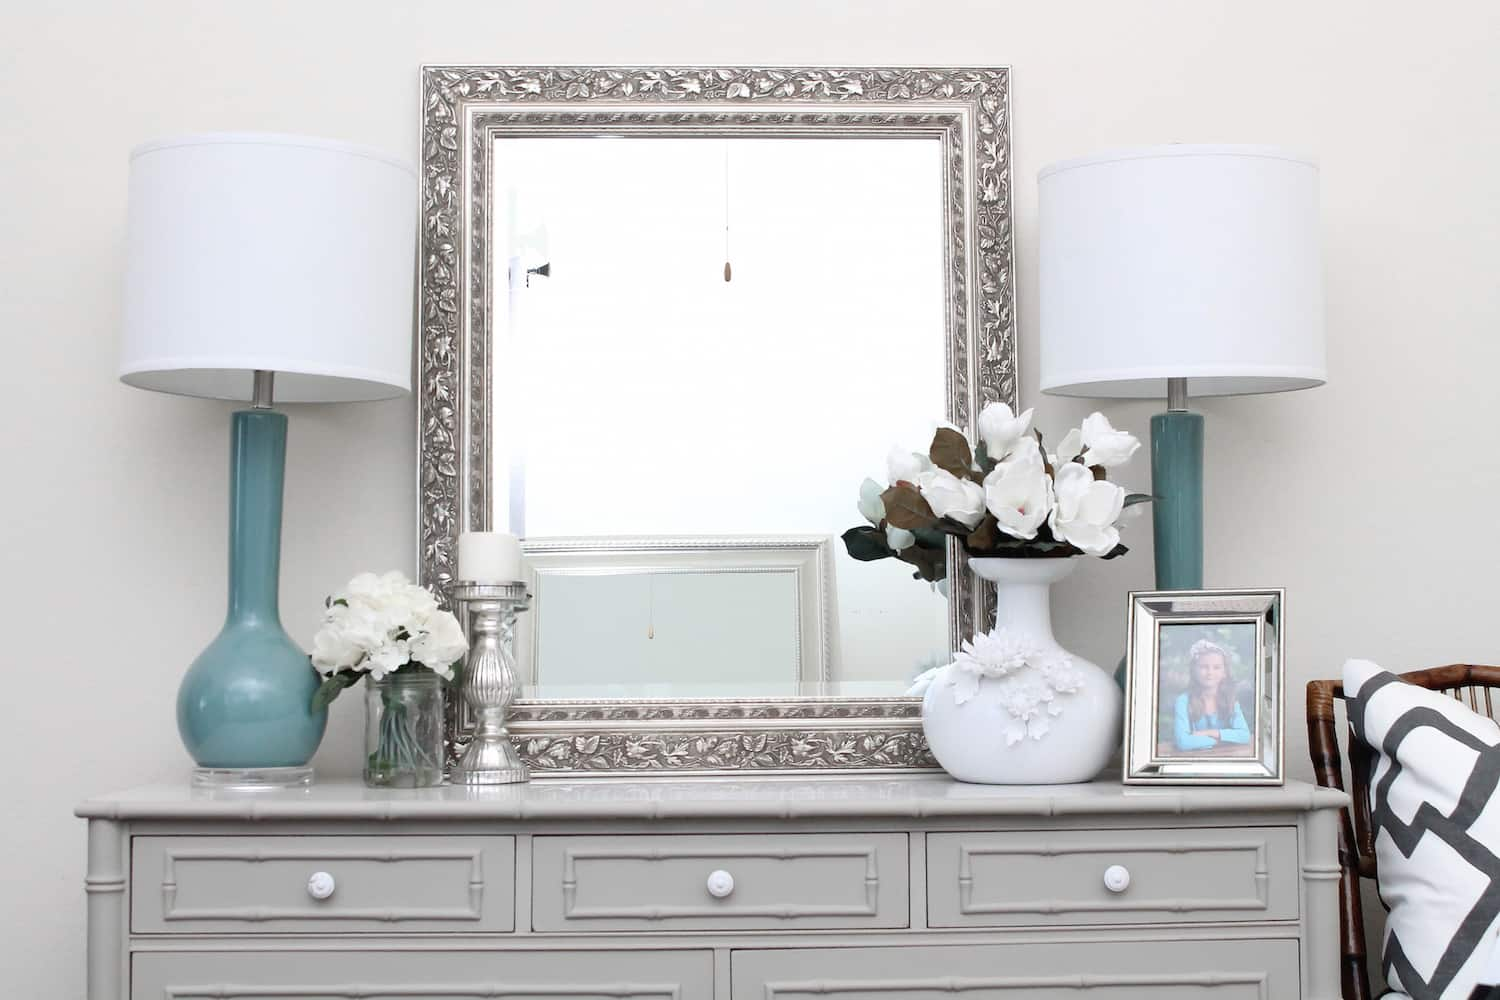 12 Tips on How to Decorate a Dresser Top   Angi [Angie's List]